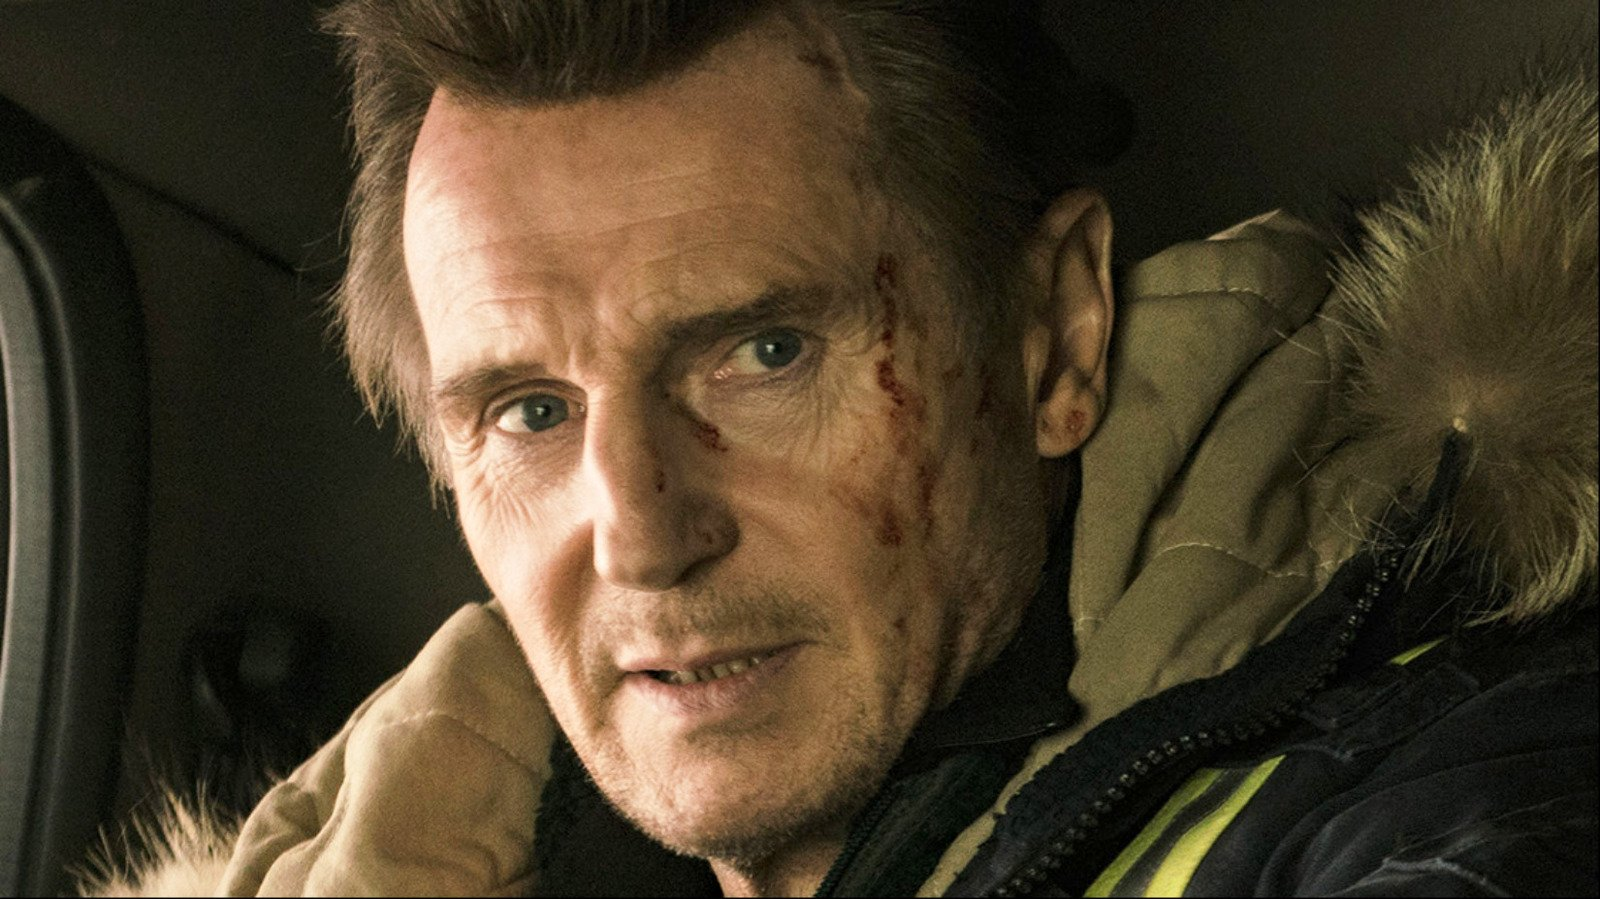 In Liam Neeson's Action Career, One Movie Stands Above The Rest